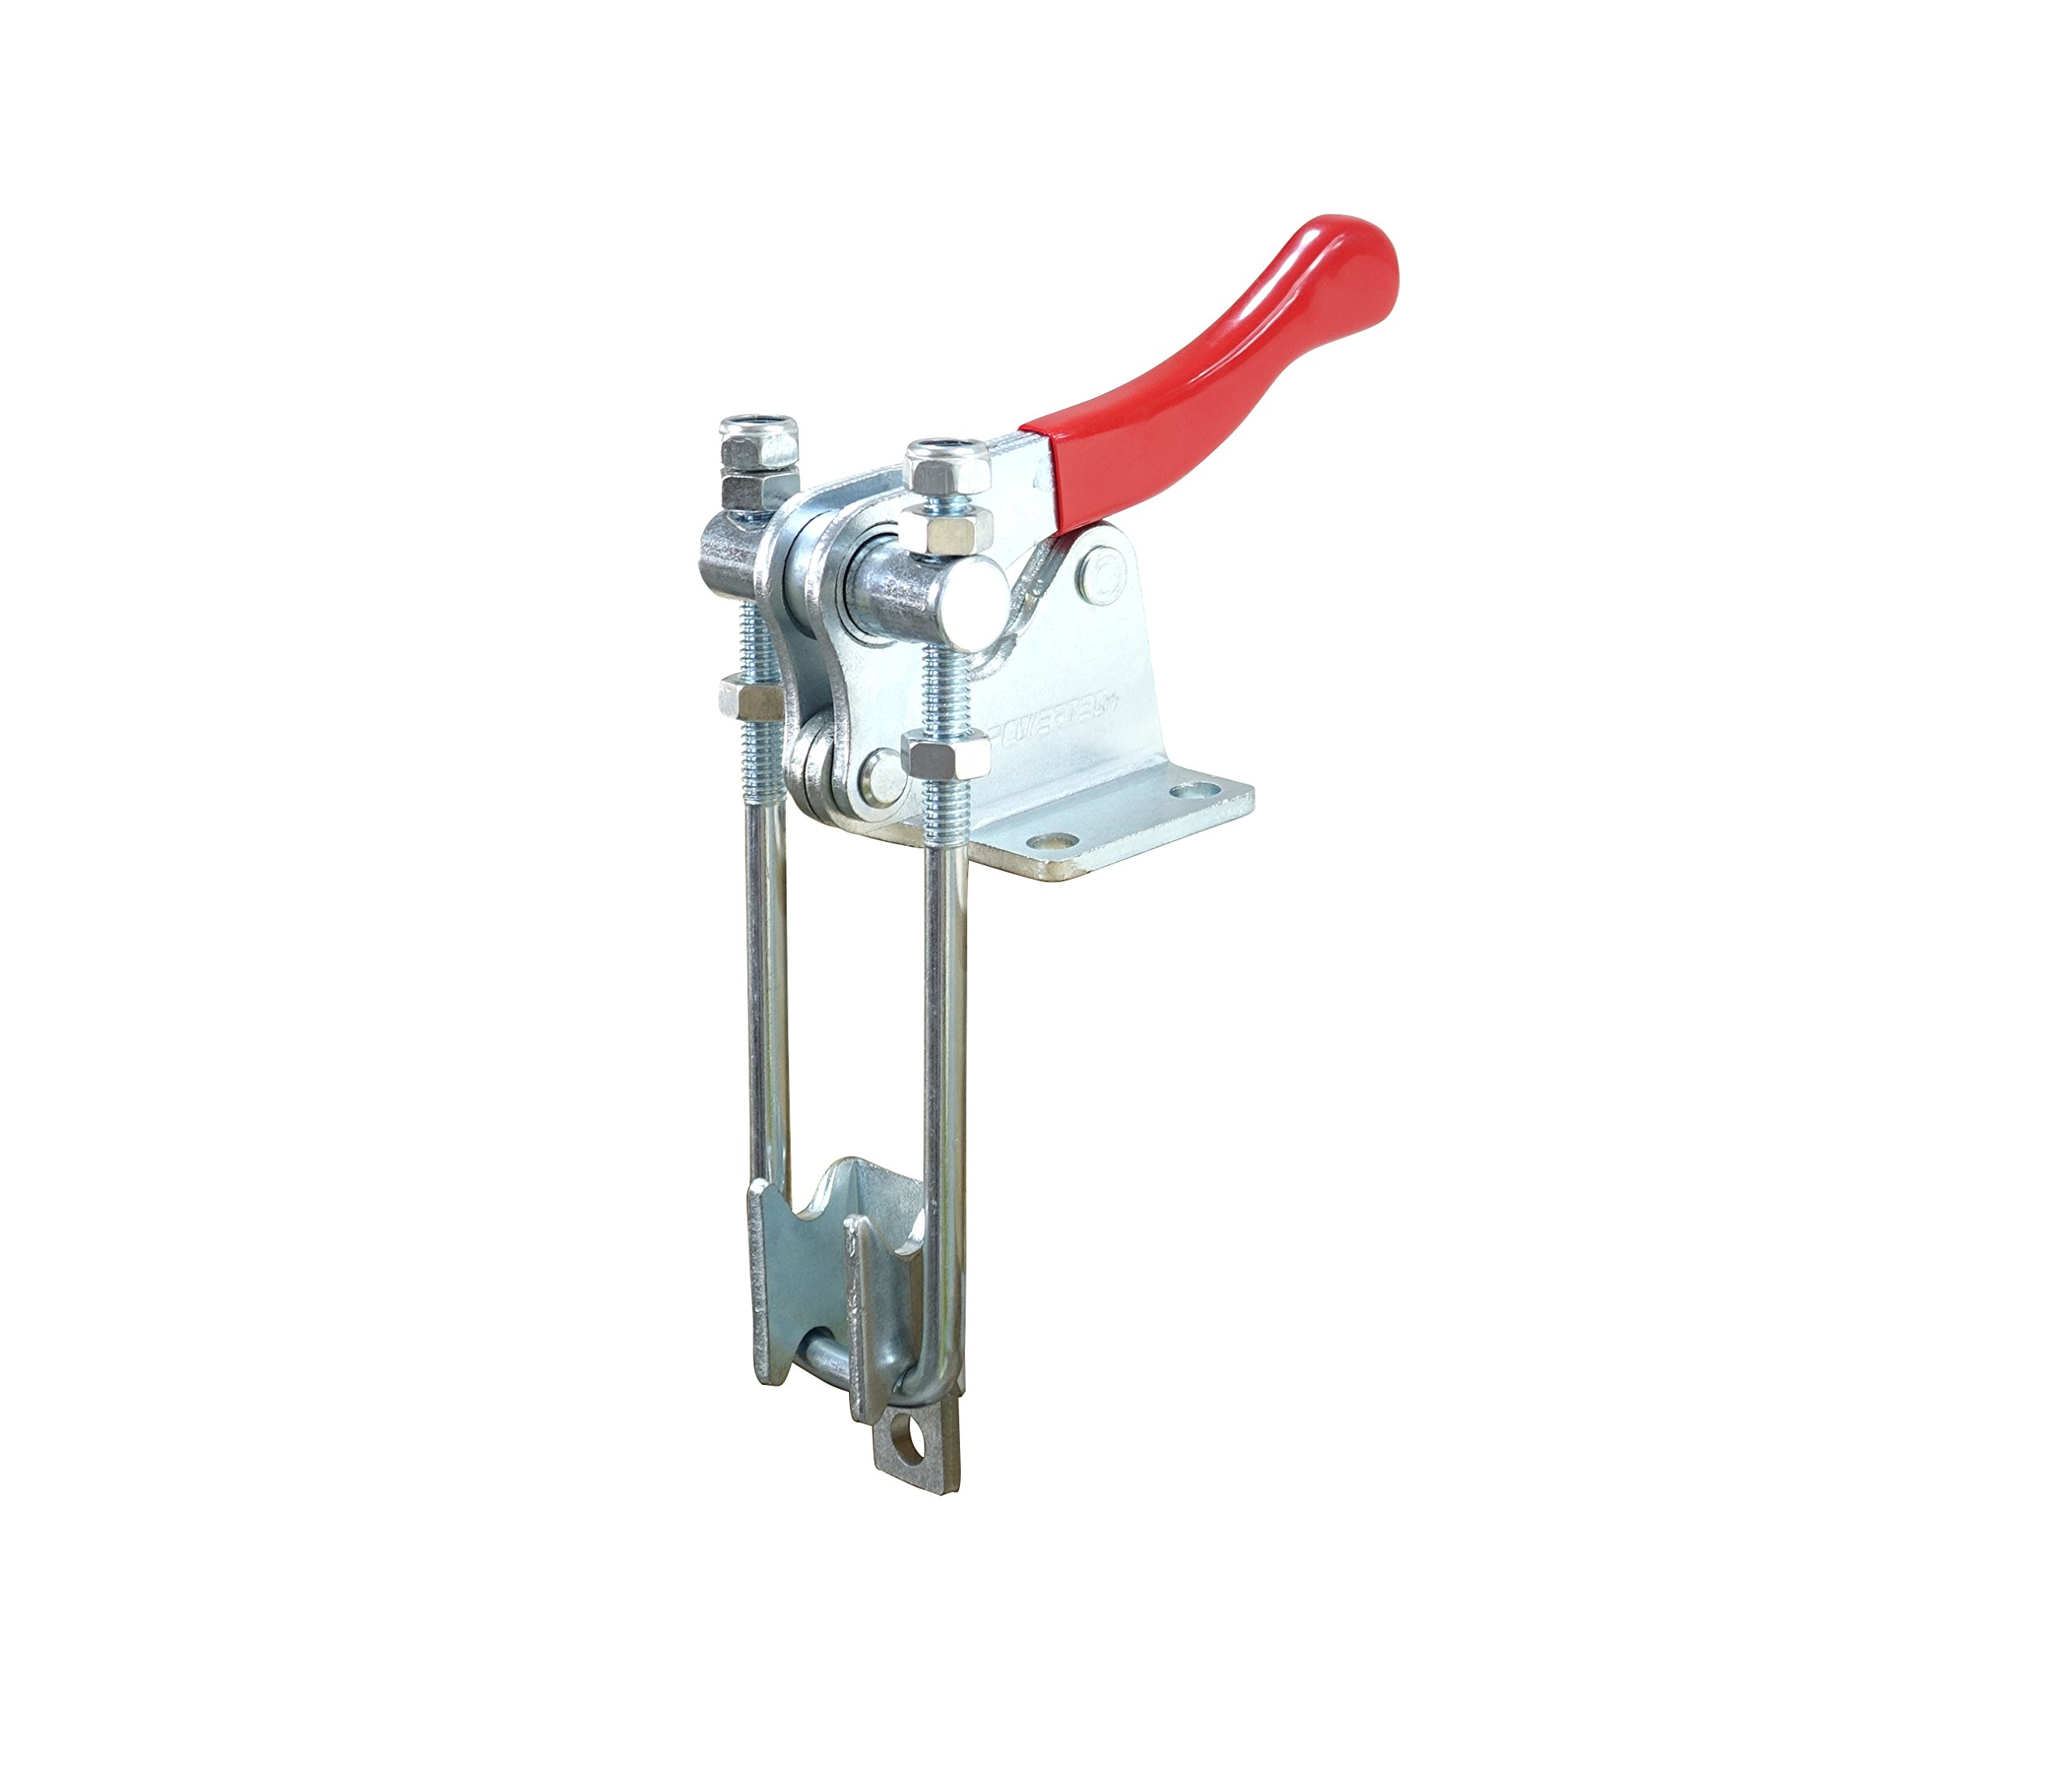 POWERTEC 20324 Latch Action Toggle Clamp w Threaded U Bolt and Red Vinyl Handle Grip - 1980 lb Holding Capacity, 40344 by POWERTEC